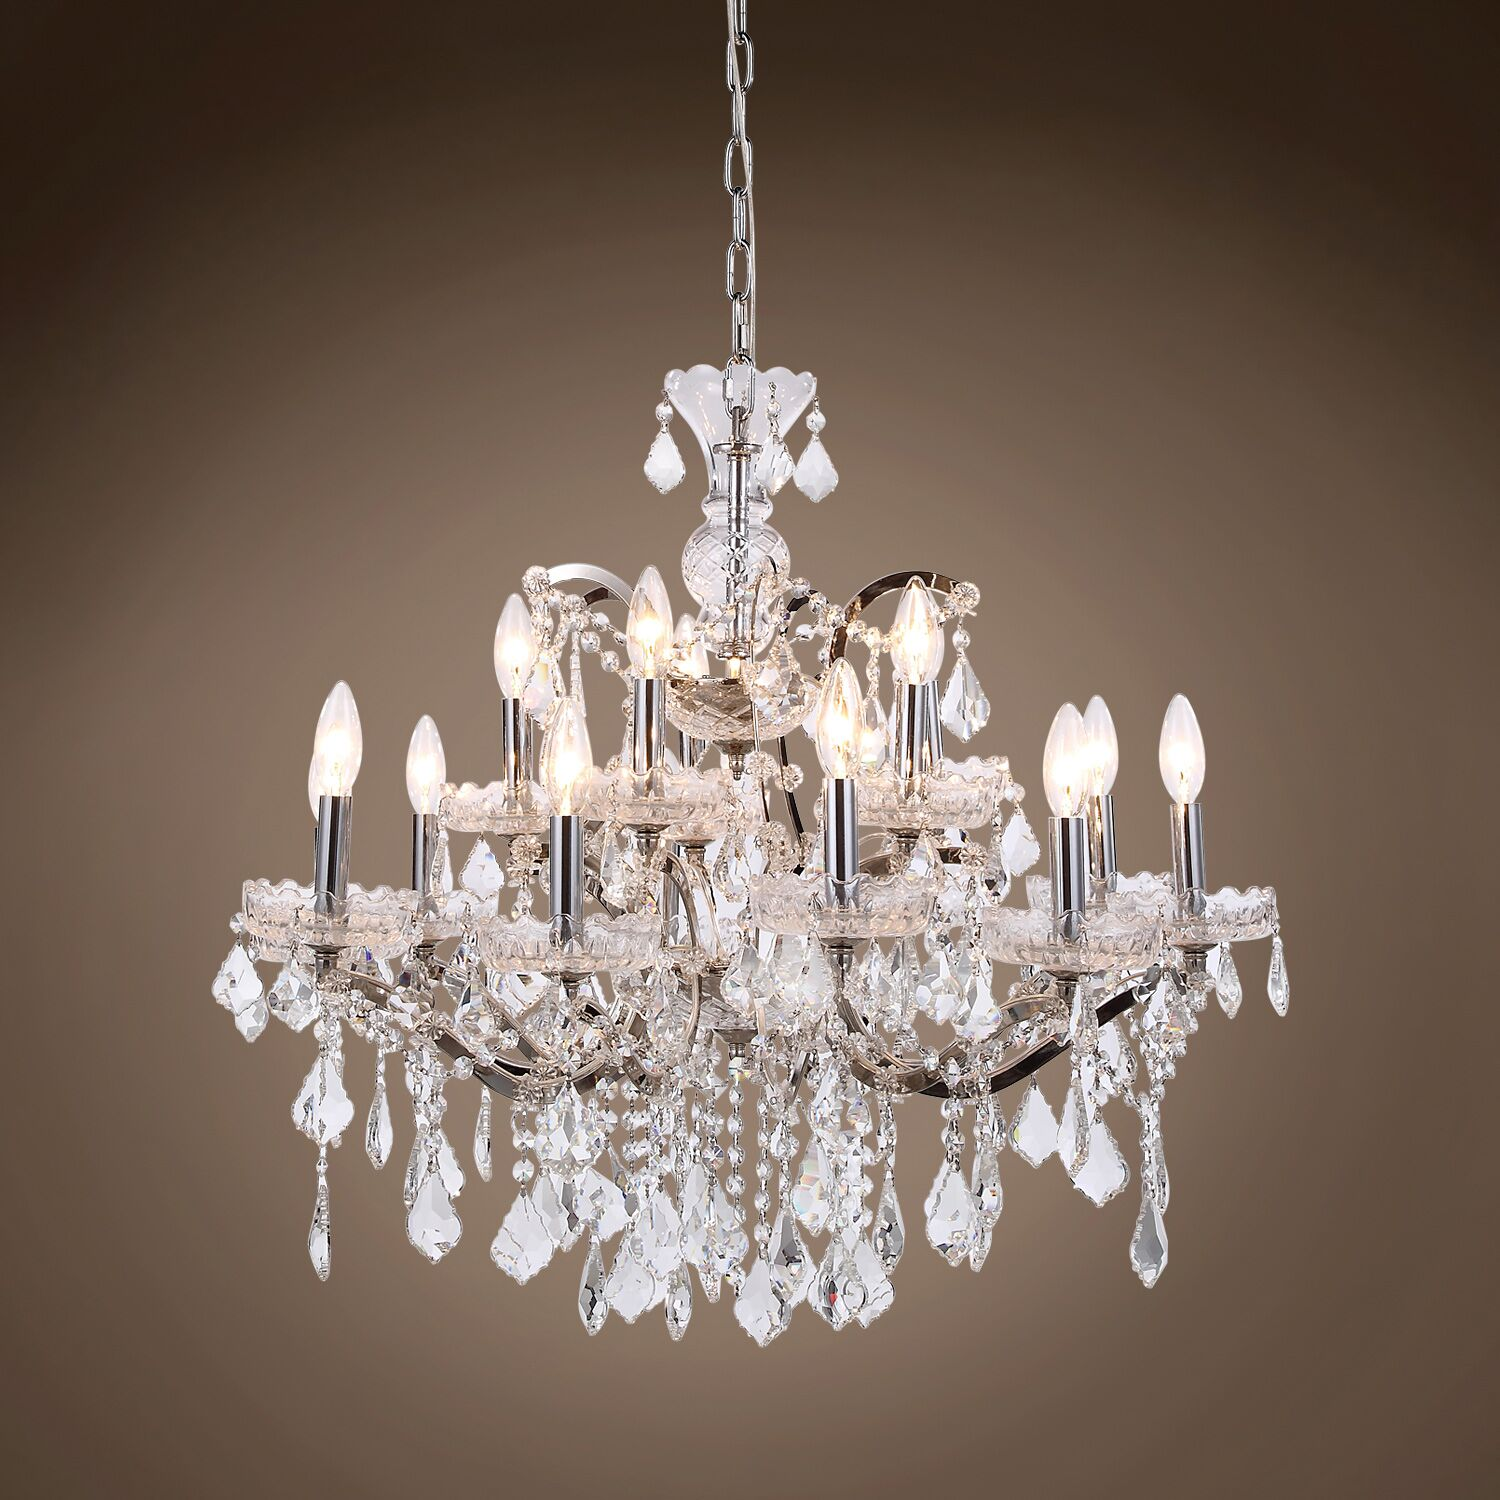 Chantrell 15-Light Chandelier Crystal Color: Clear, Finish: Polished Nickel